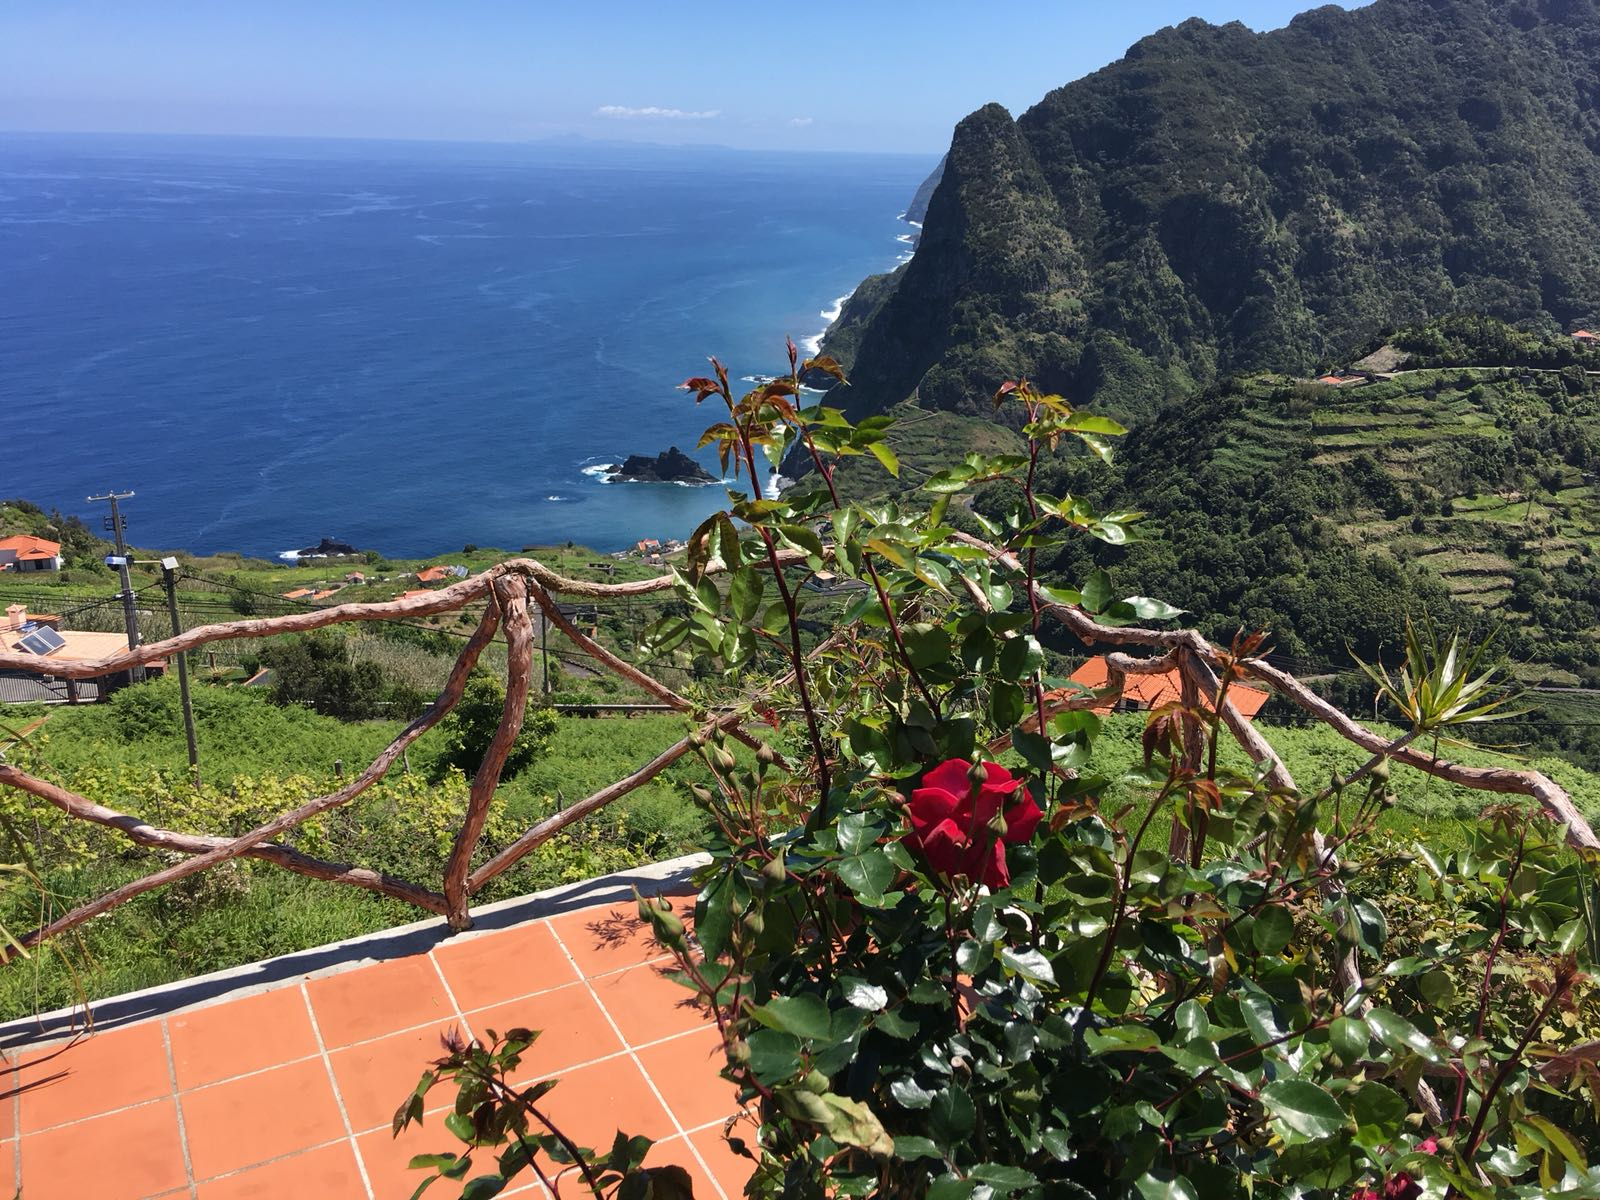 MadeiraCasa – Country cottage with stunning views and privacy